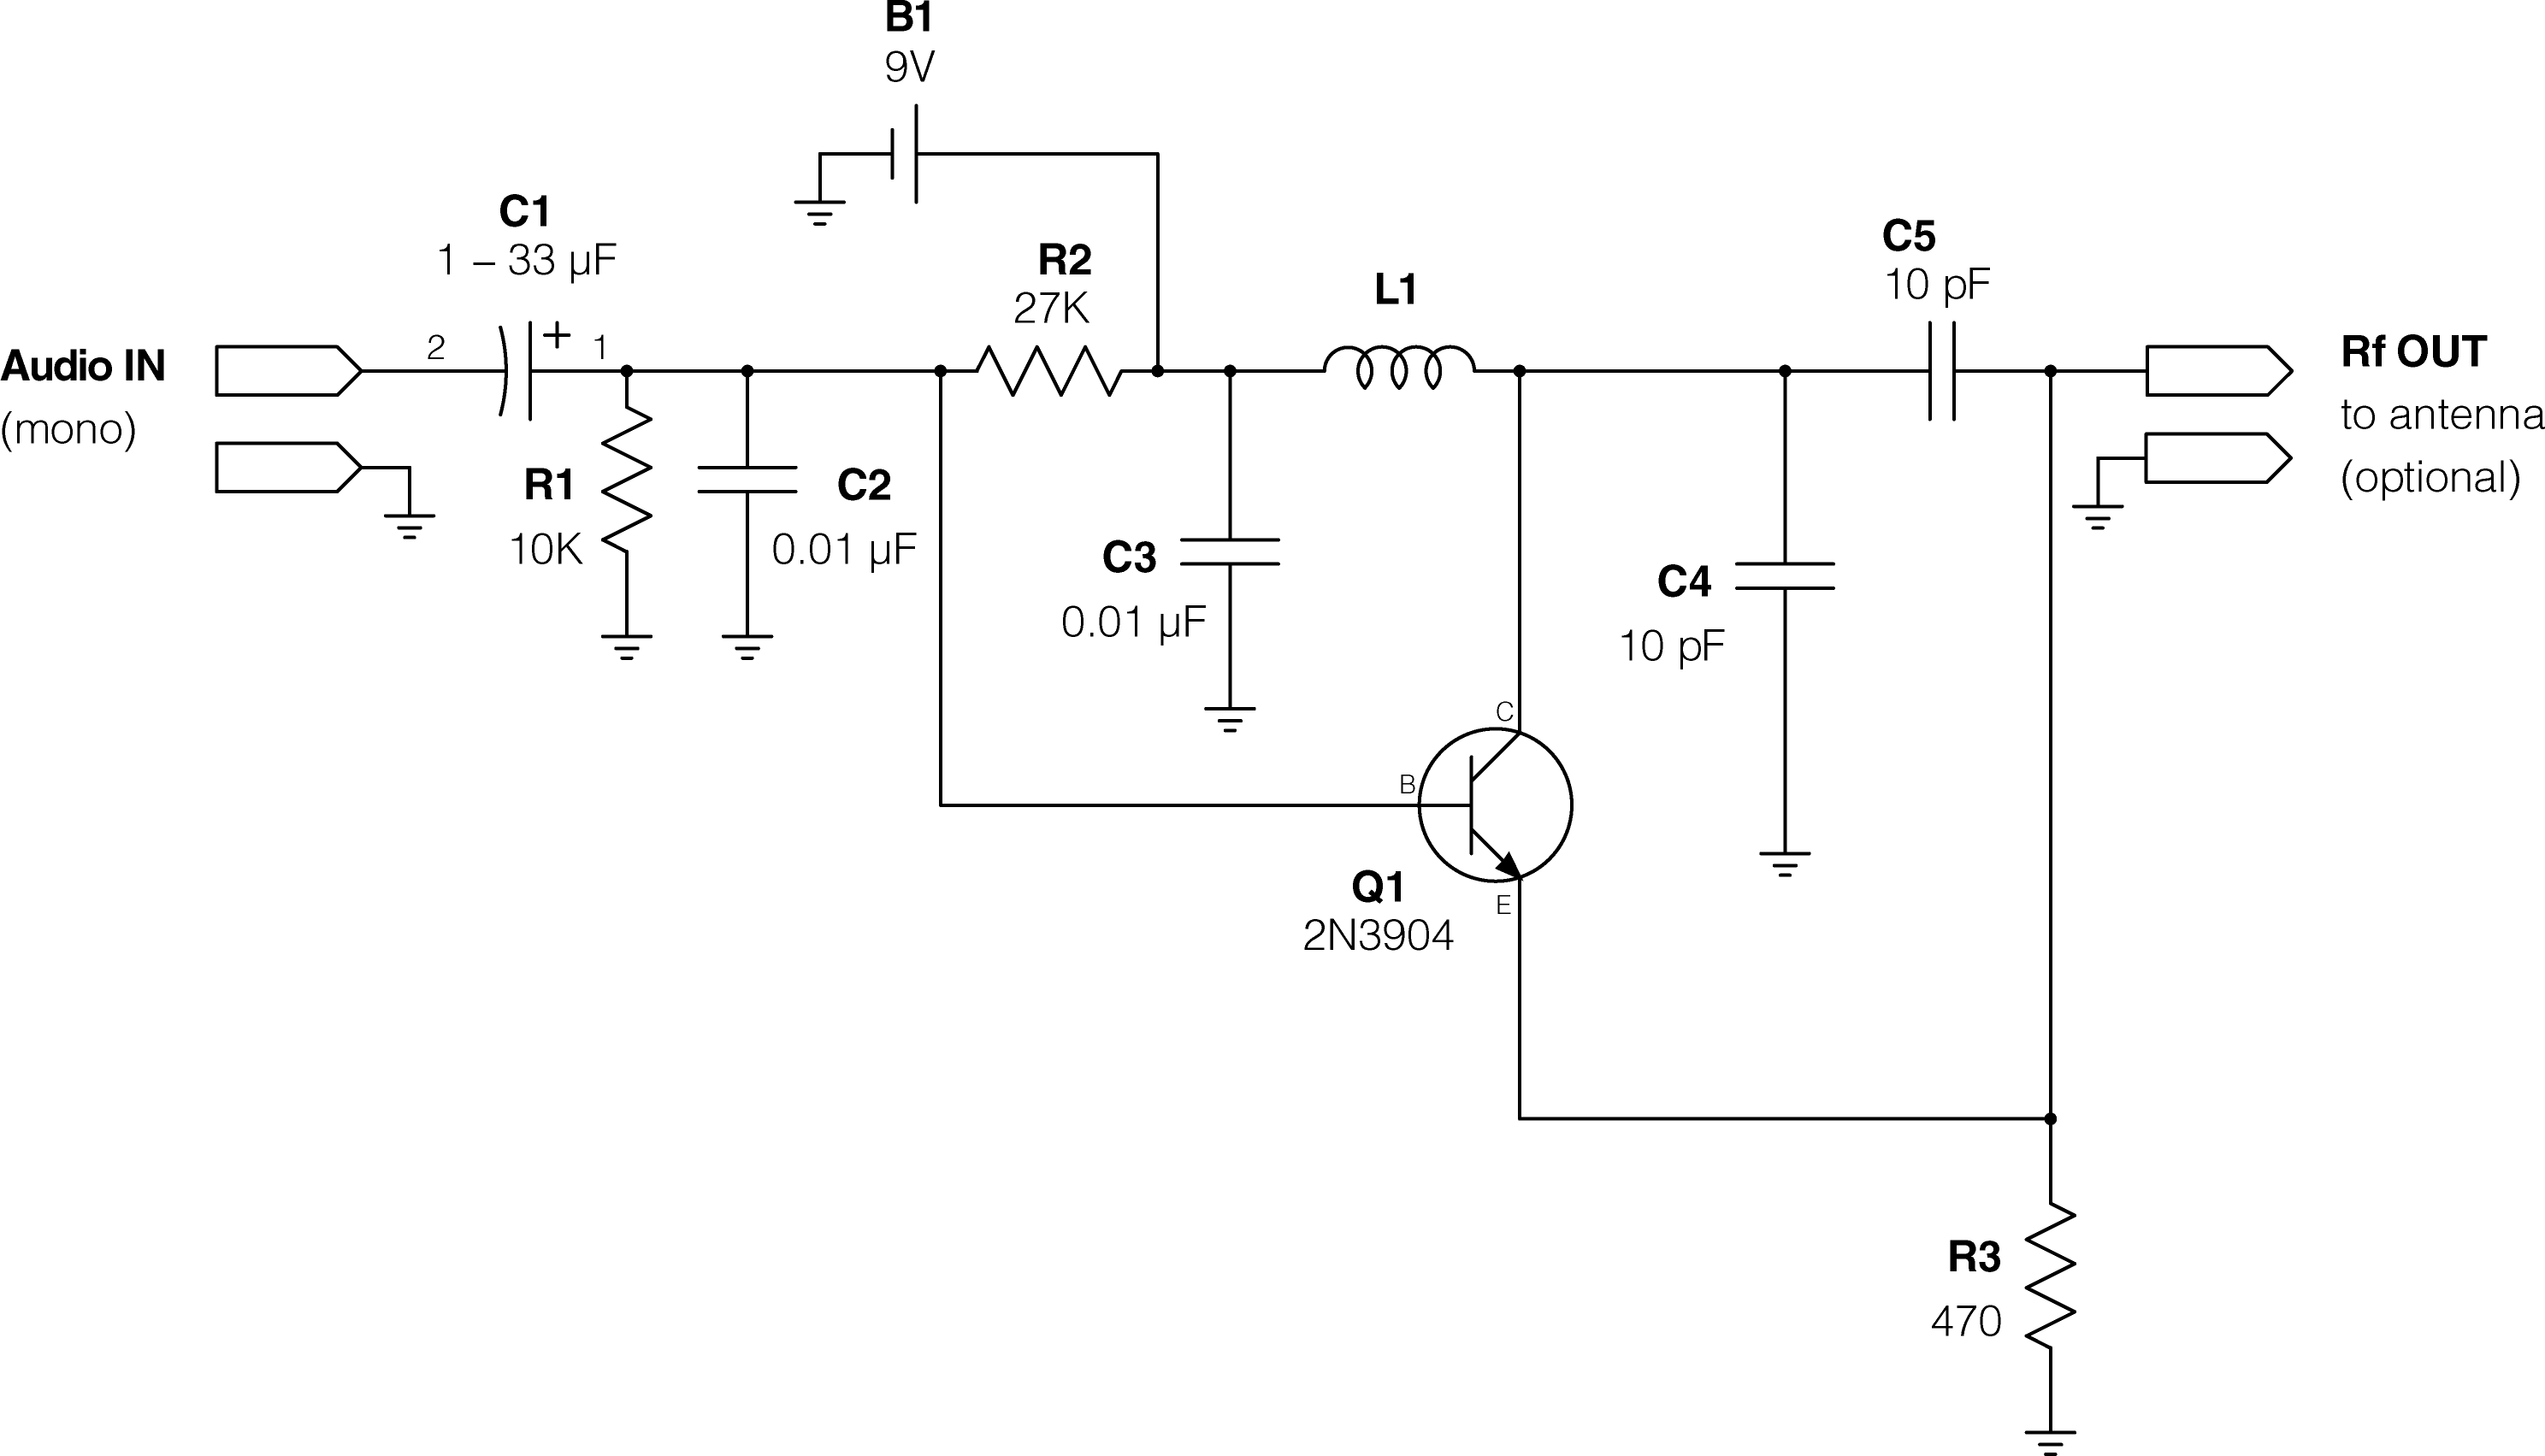 Simple Fm Transmitter Circuit Diagram 37 Wiring Images Spy Bug Using Transistor Gadgetronicx Kogawa Simplest Transmitterresize6202c354 Super Ipod Make